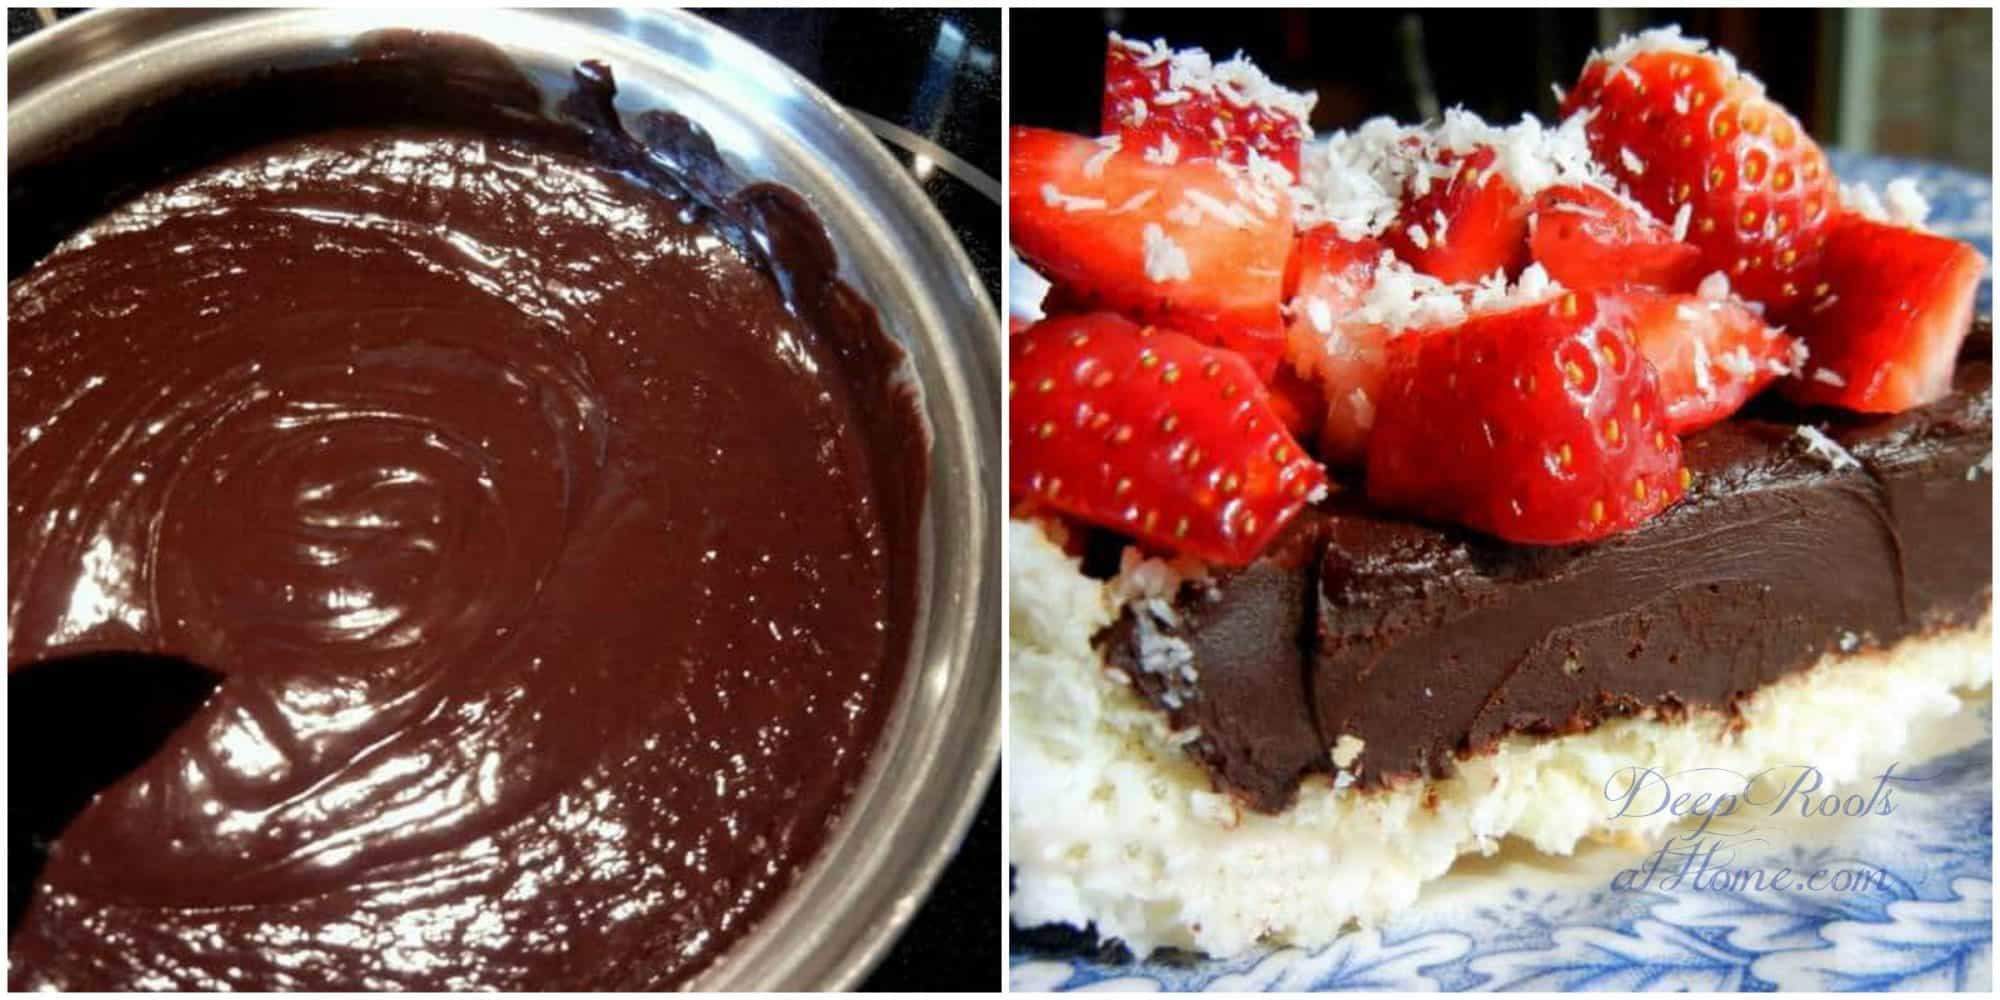 making rich chocolate filling and adding strawberries